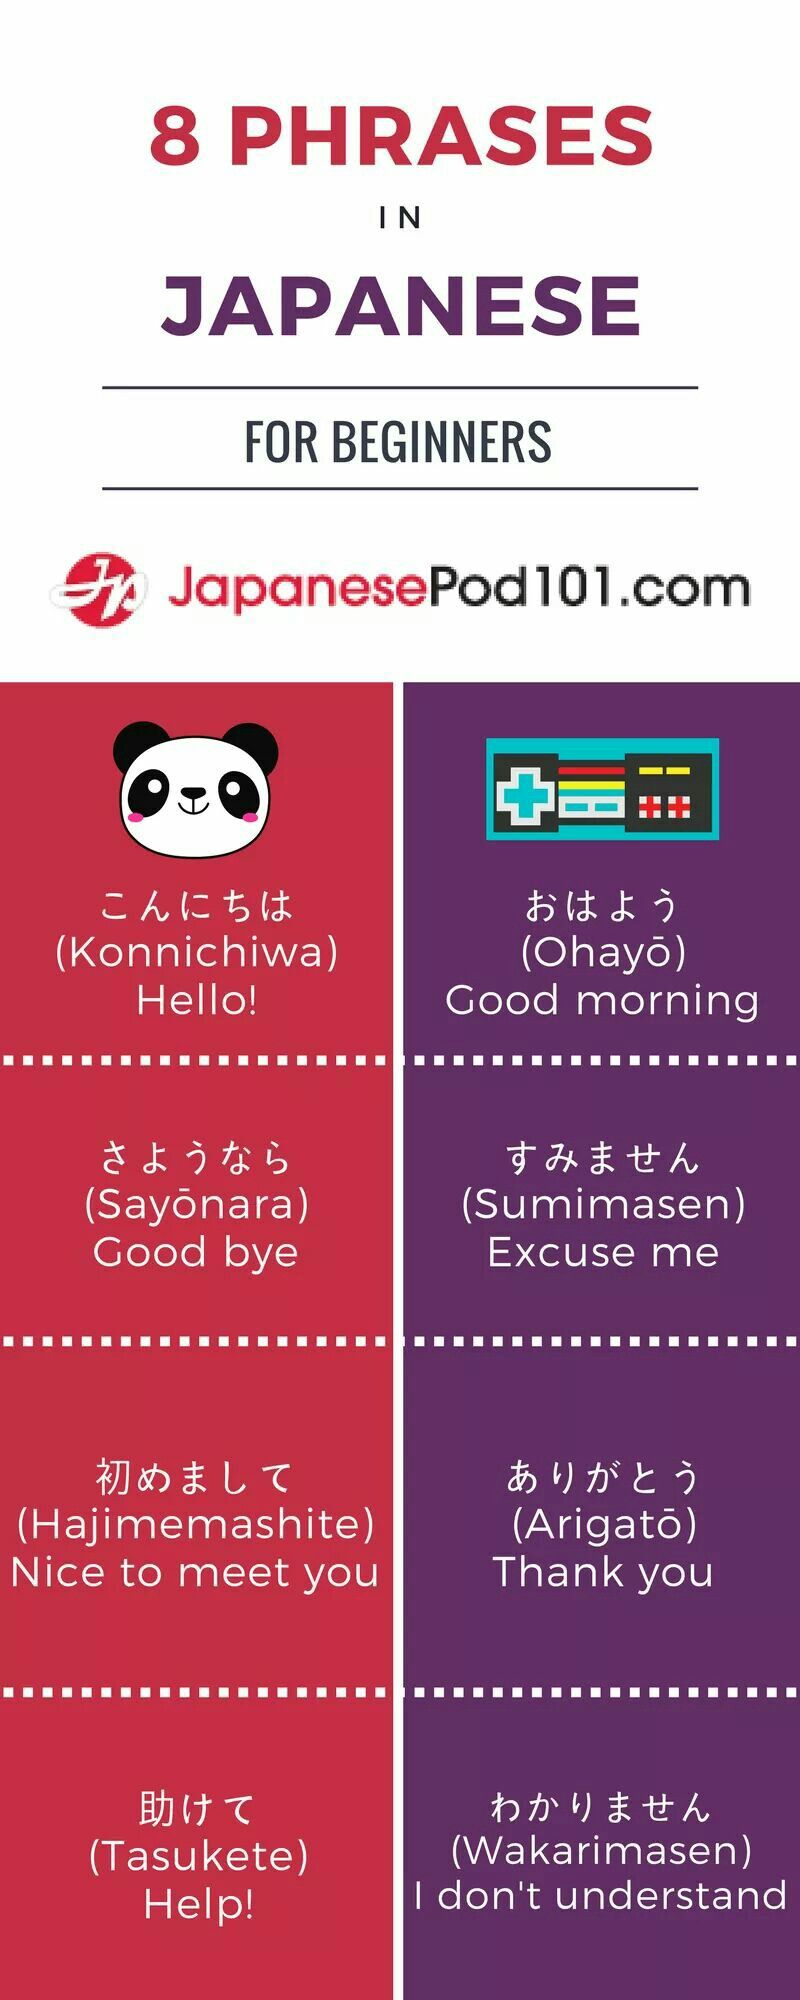 8 Japanese Phrases For Beginners From Japanesepod101 Second